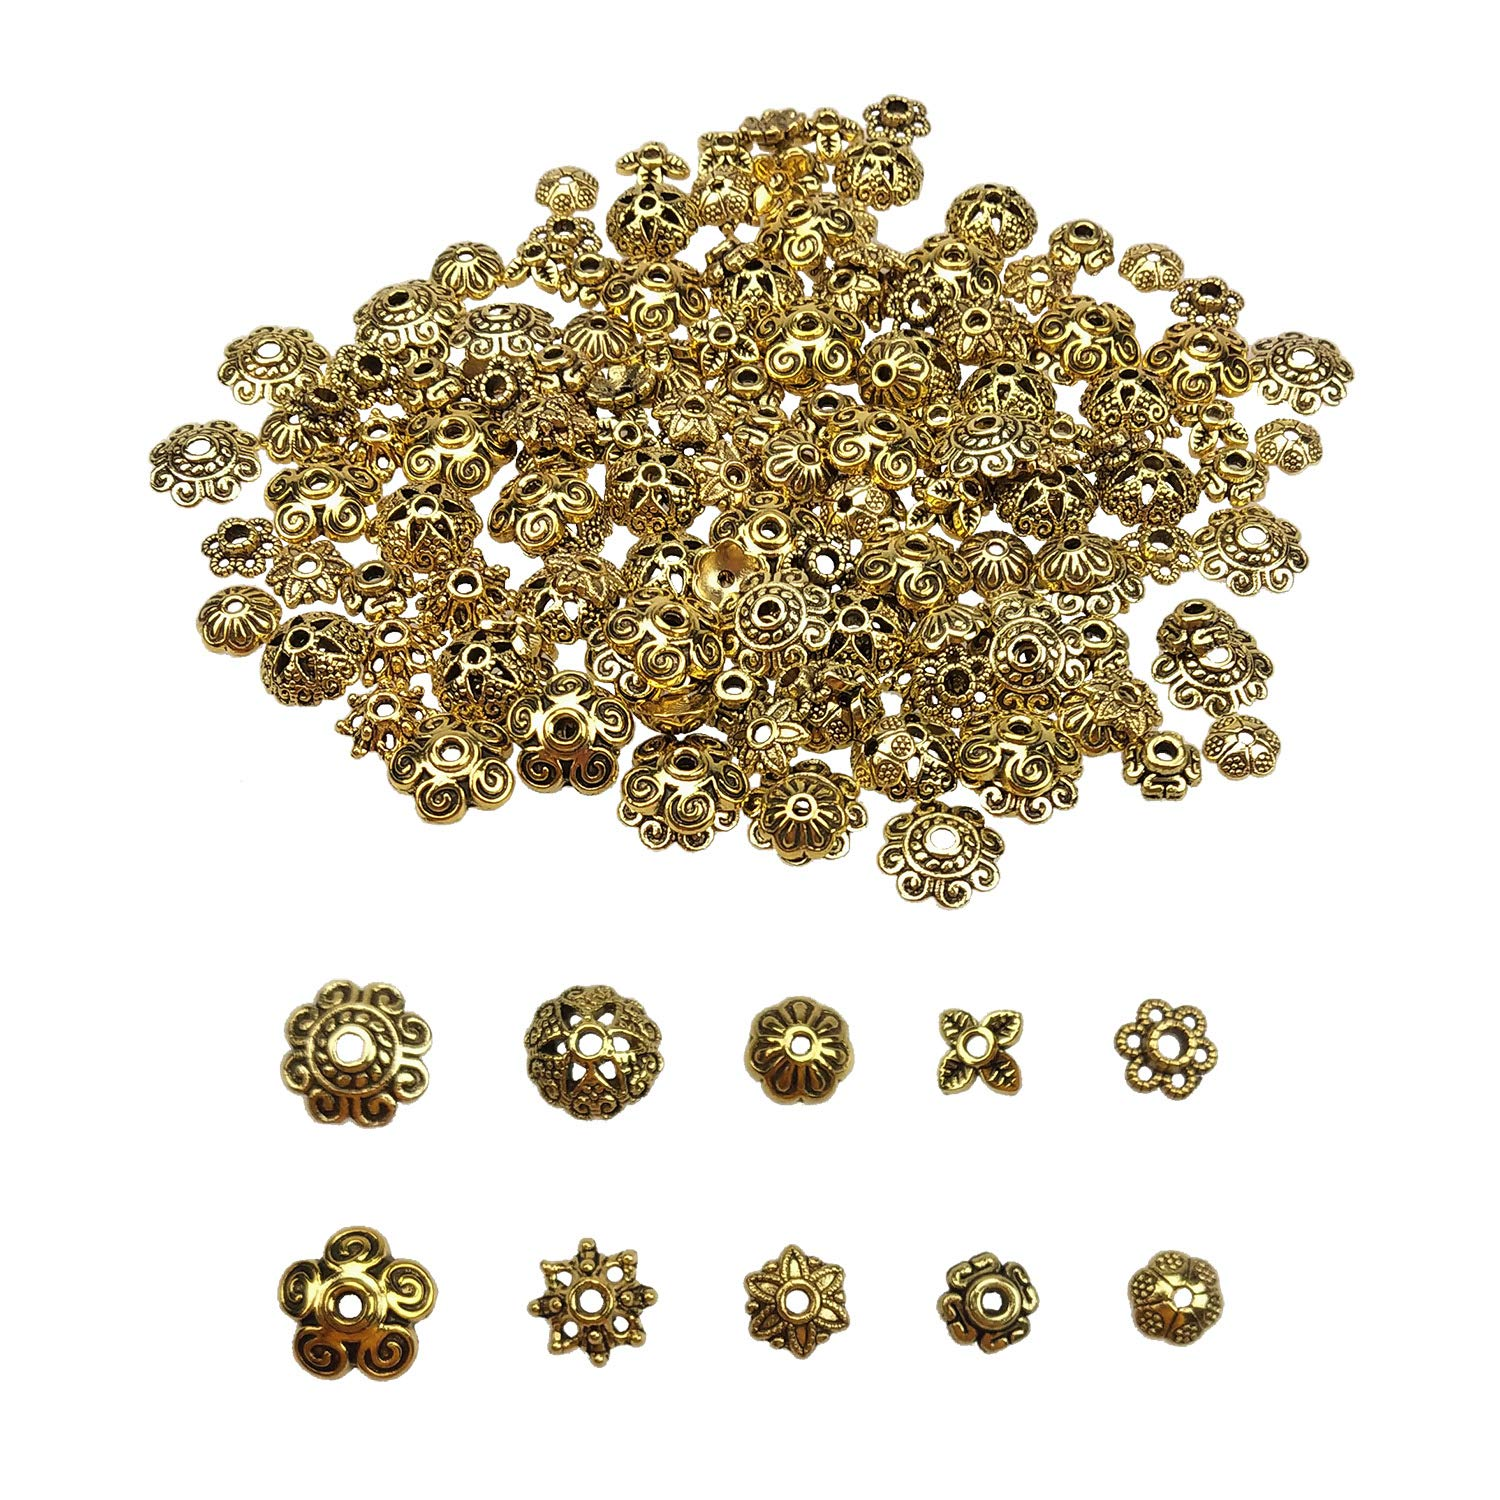 Pandahall 1Box//170pcs Tibetan Style Alloy Flower Petal Bead Caps Beads Spacers for Jewelry Makings 9-12mm in Diameter Antique Bronze